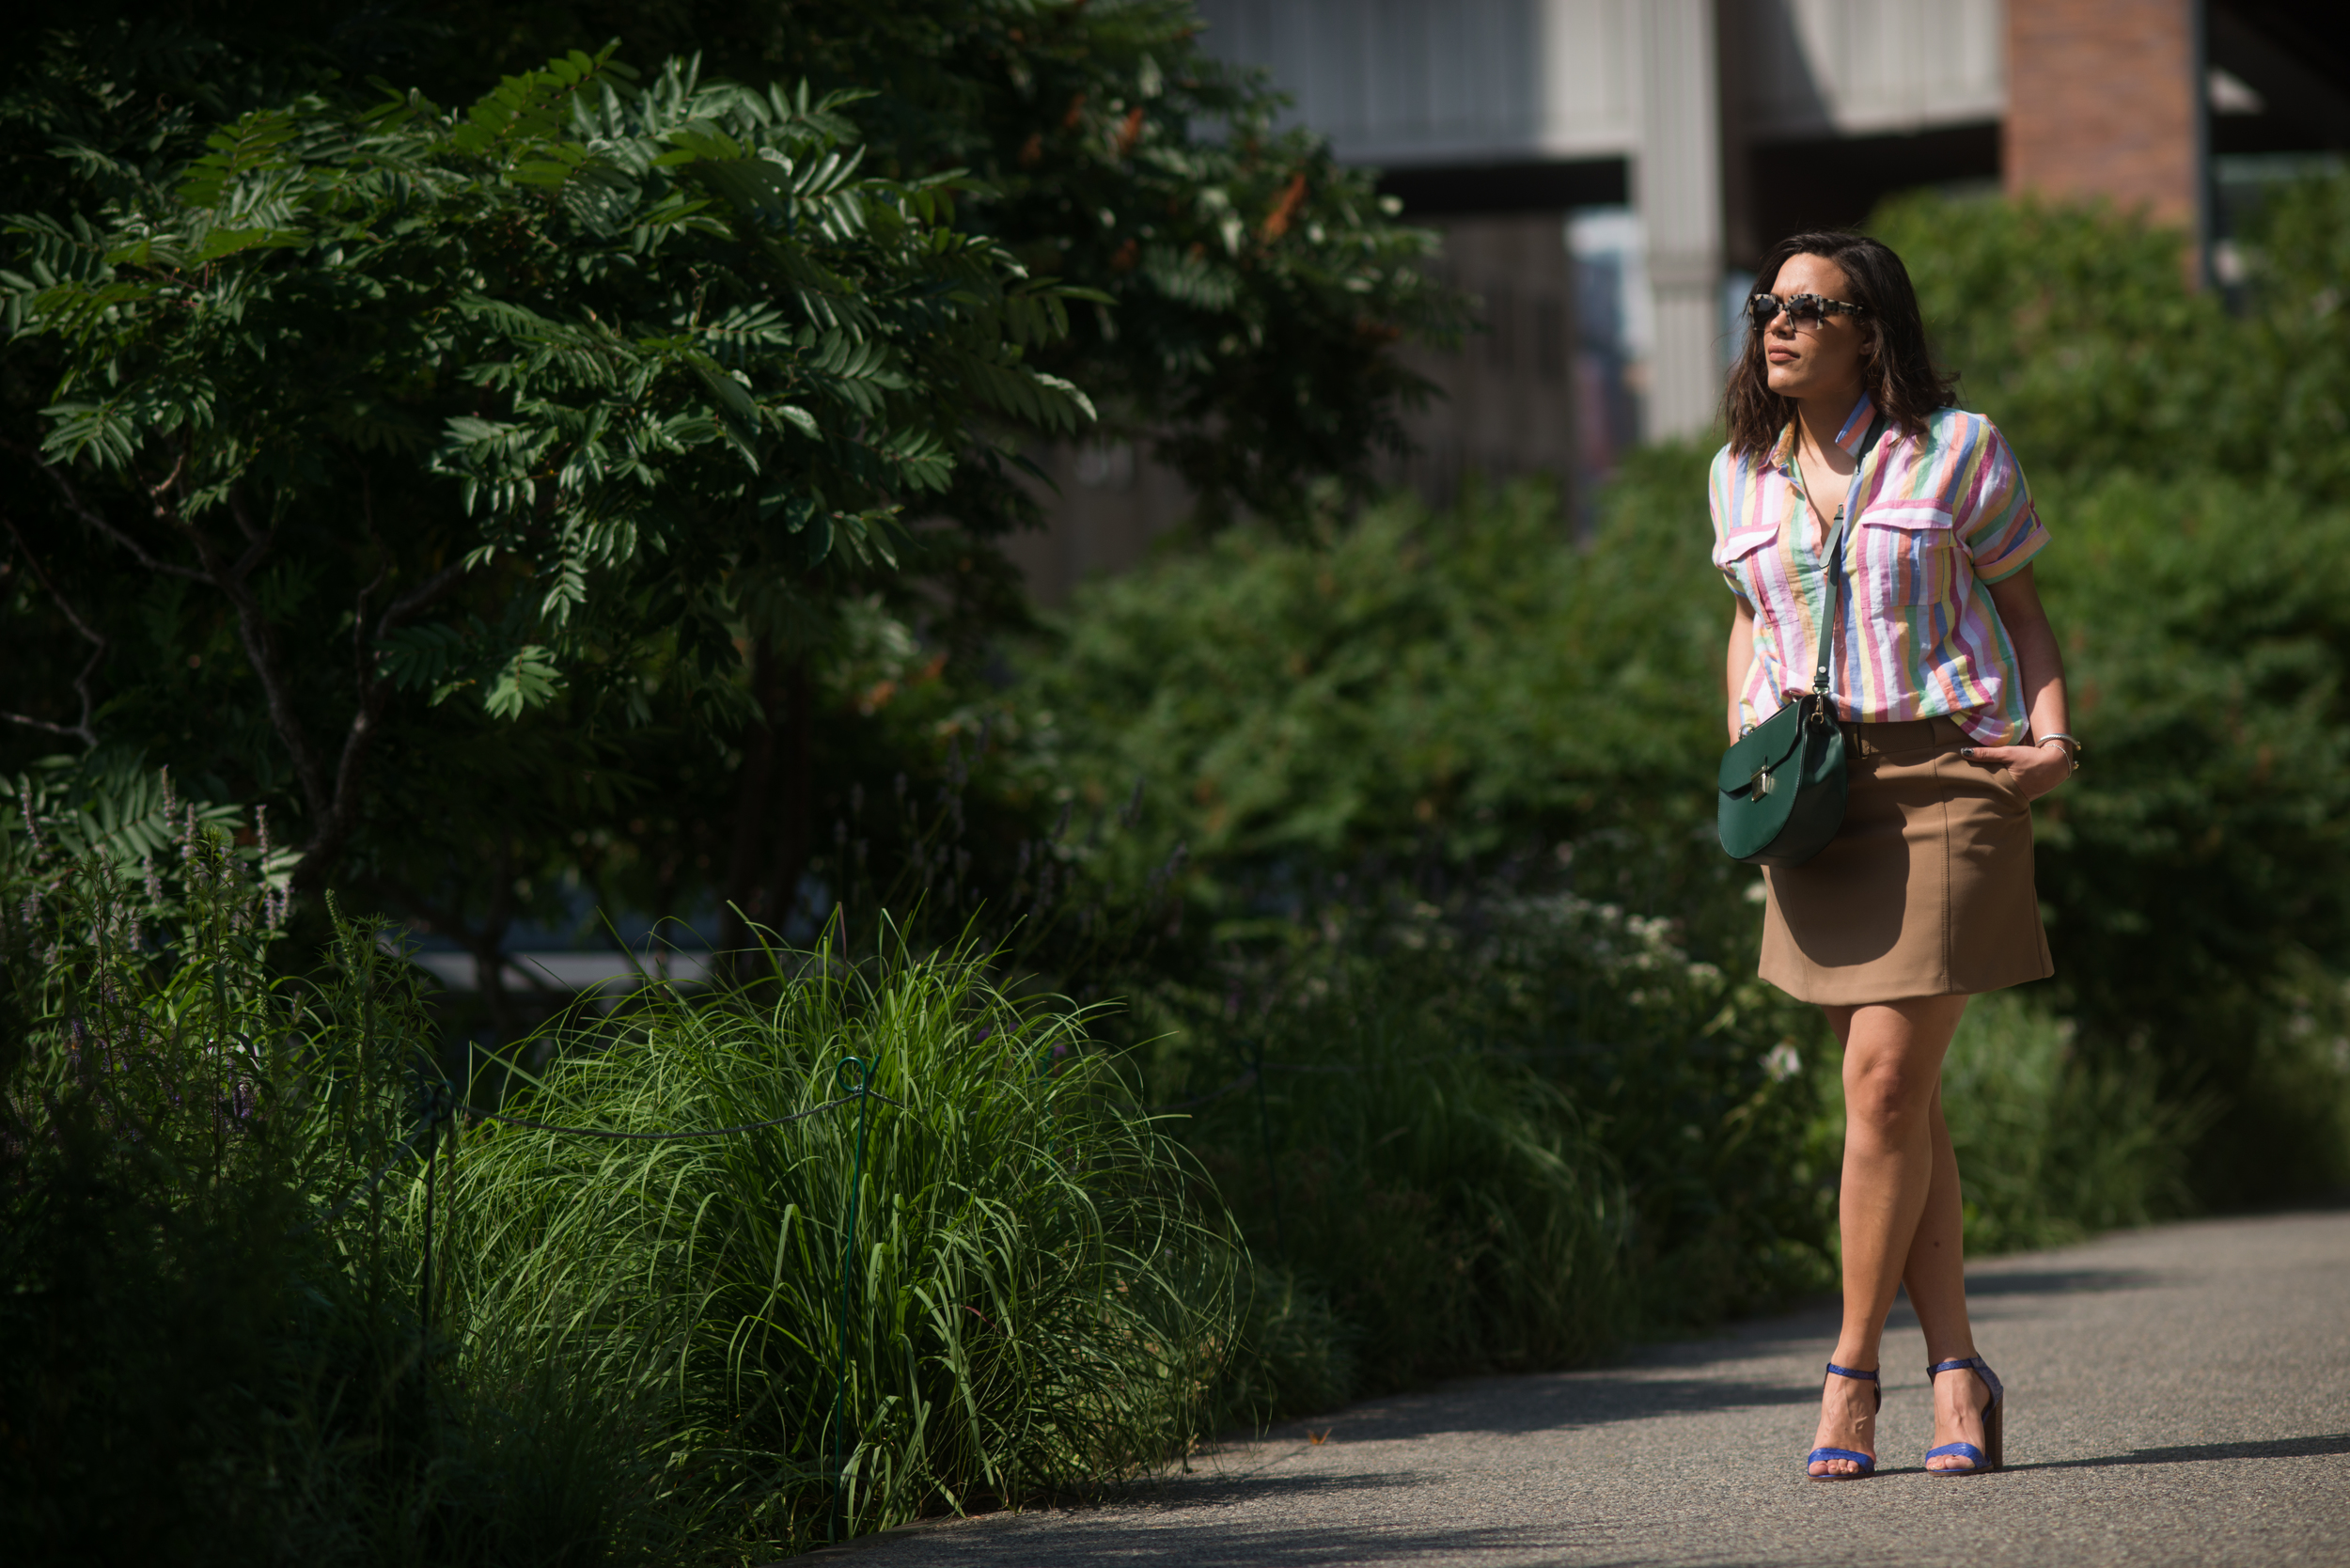 how-to-wear-jcrew-candy-stripe-shirt-what-to-wear-when-it's-really-hot-outside-latina-new-york-city-fashion-blogger-style-operator-summer-fashion.jpg